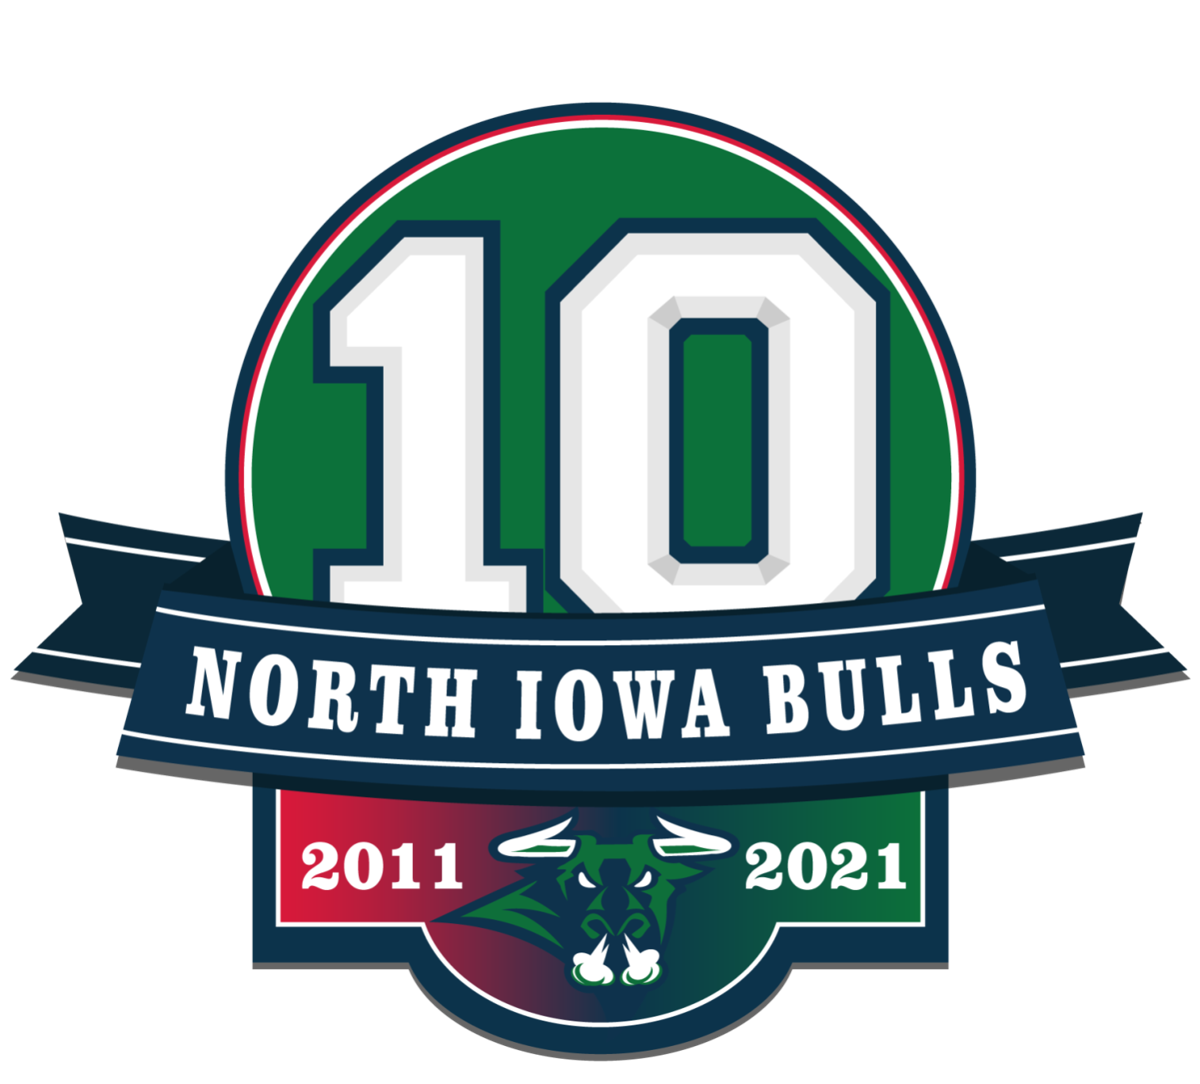 North Iowa Bulls 10 year